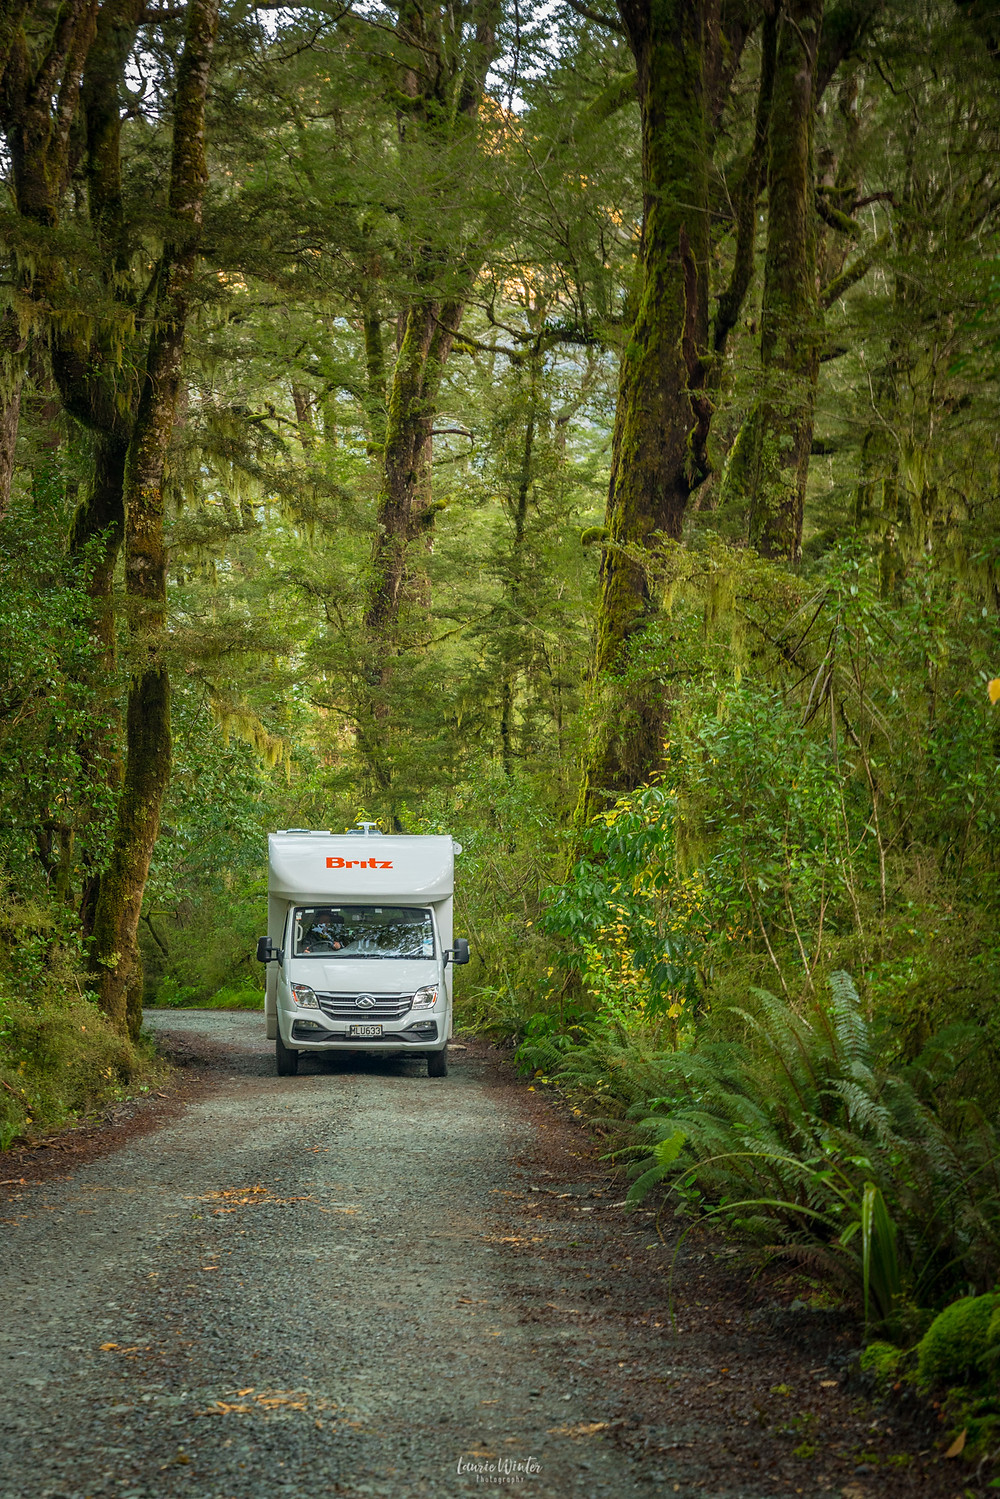 Trees tower over the Britz campervan on the road to Lake Gunn in Fiordland